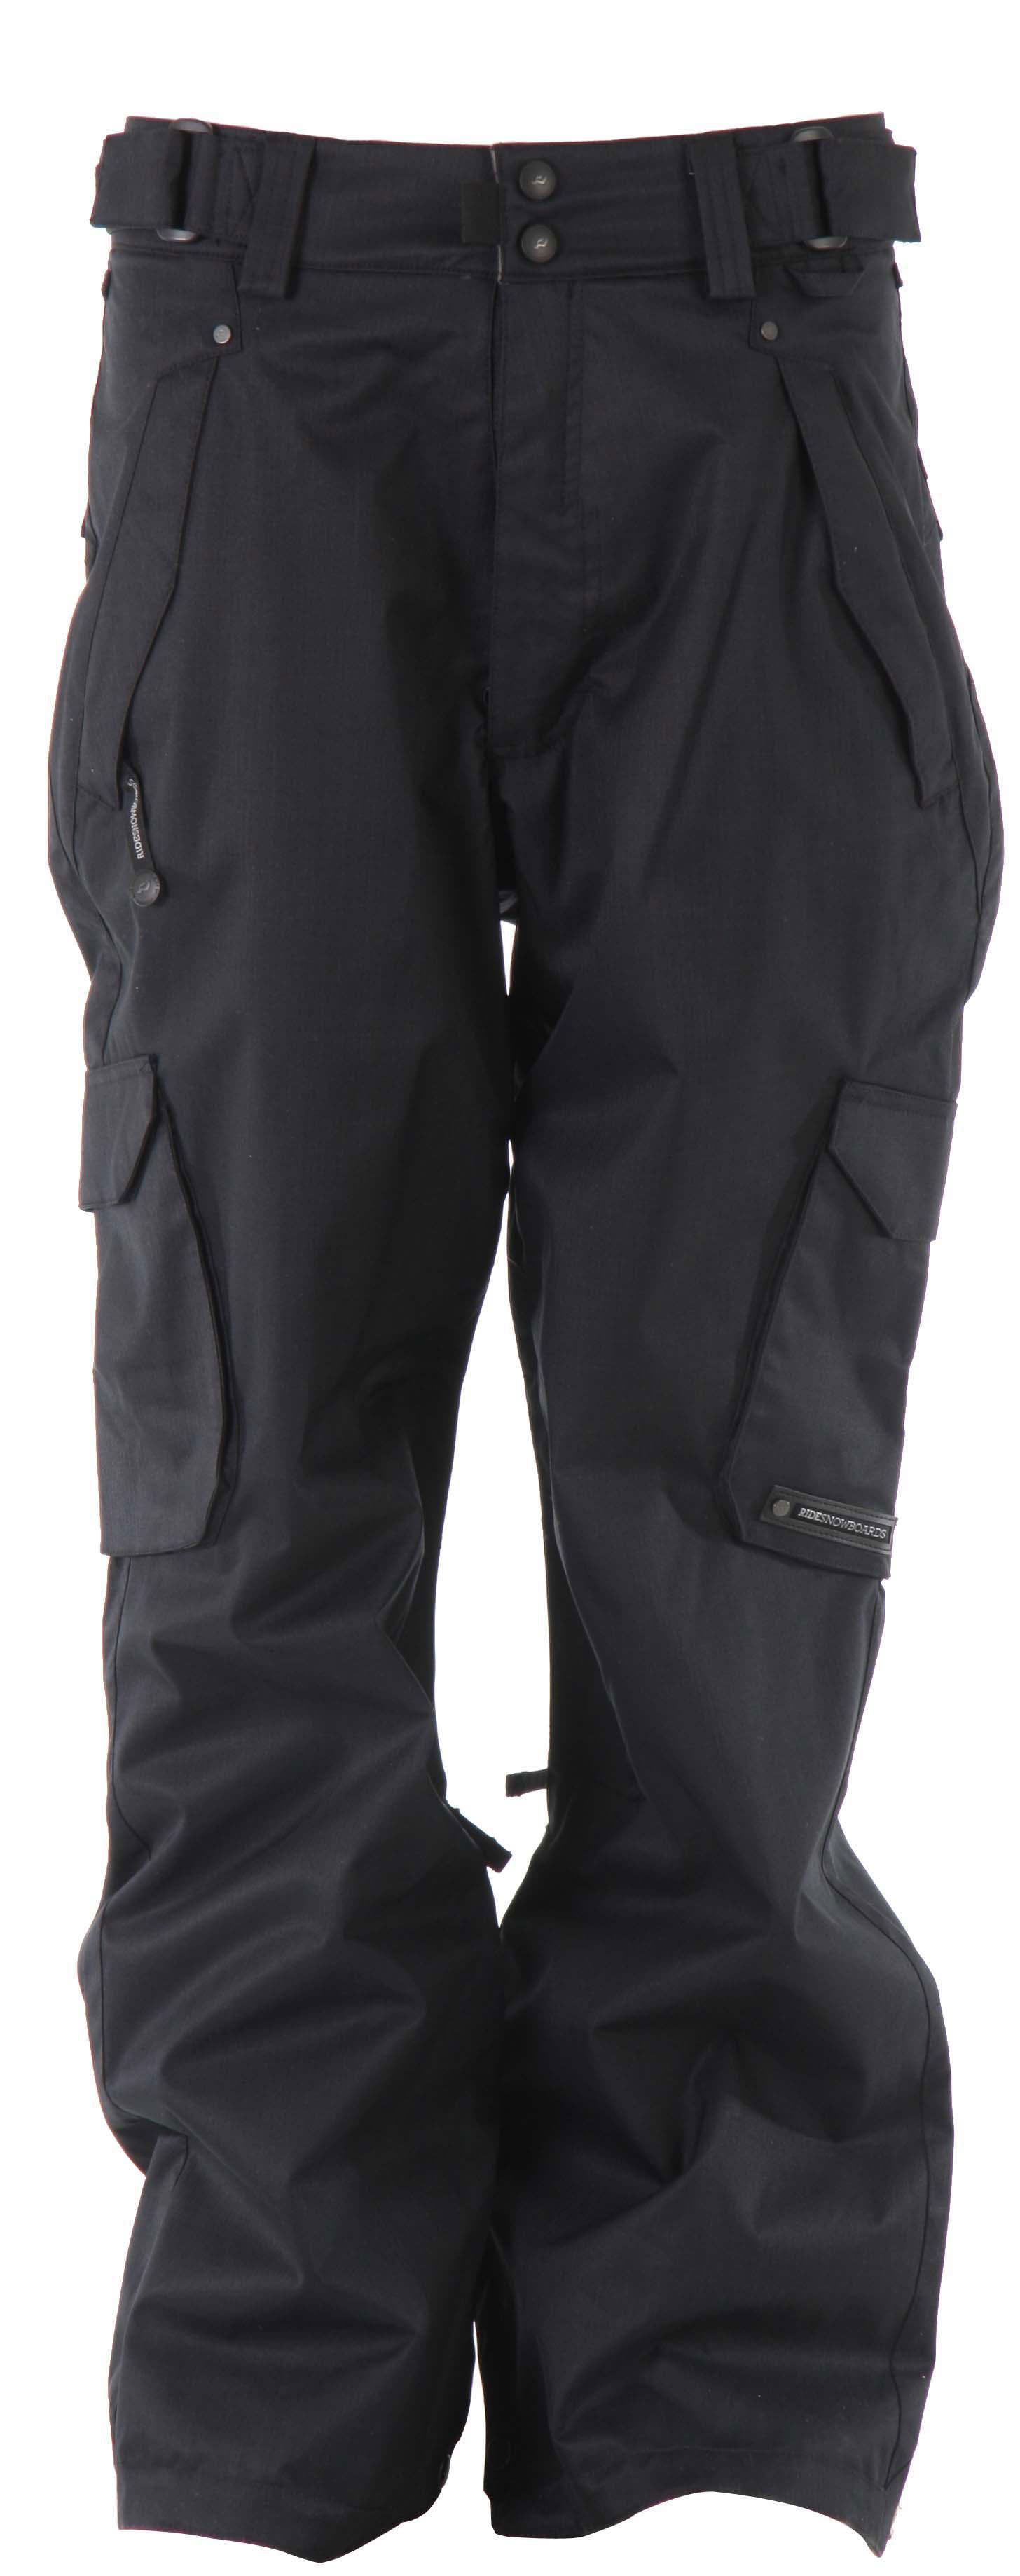 Shop for Ride Phinney Snowboard Pants Black - Men's